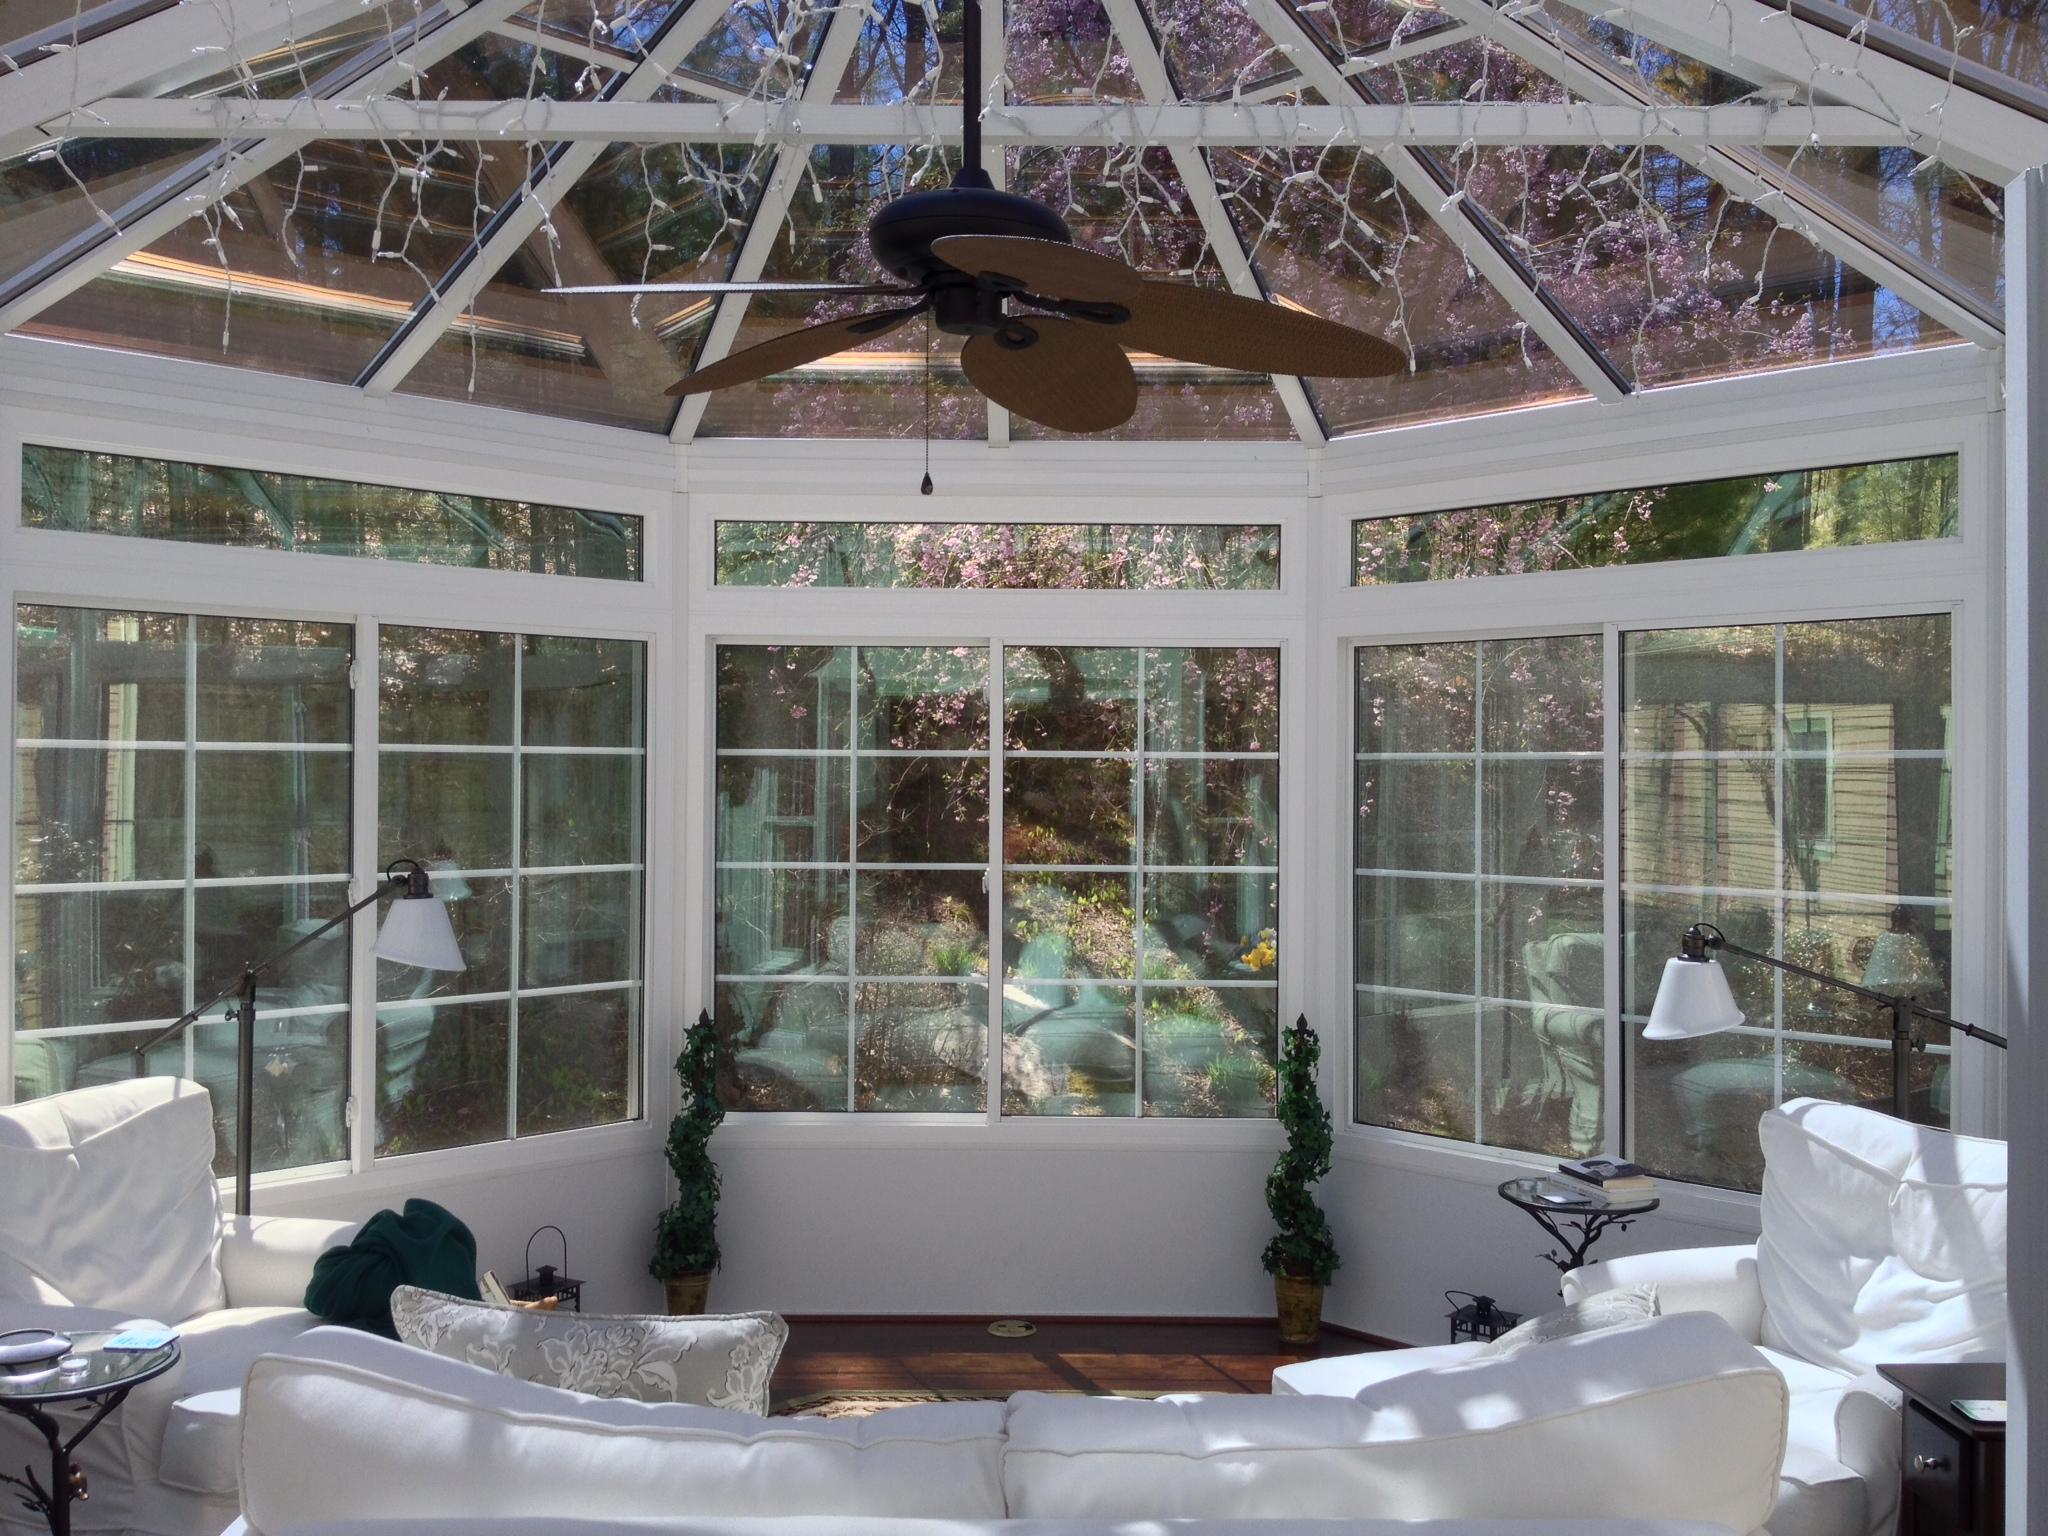 Four Seasons Sunrooms image 12